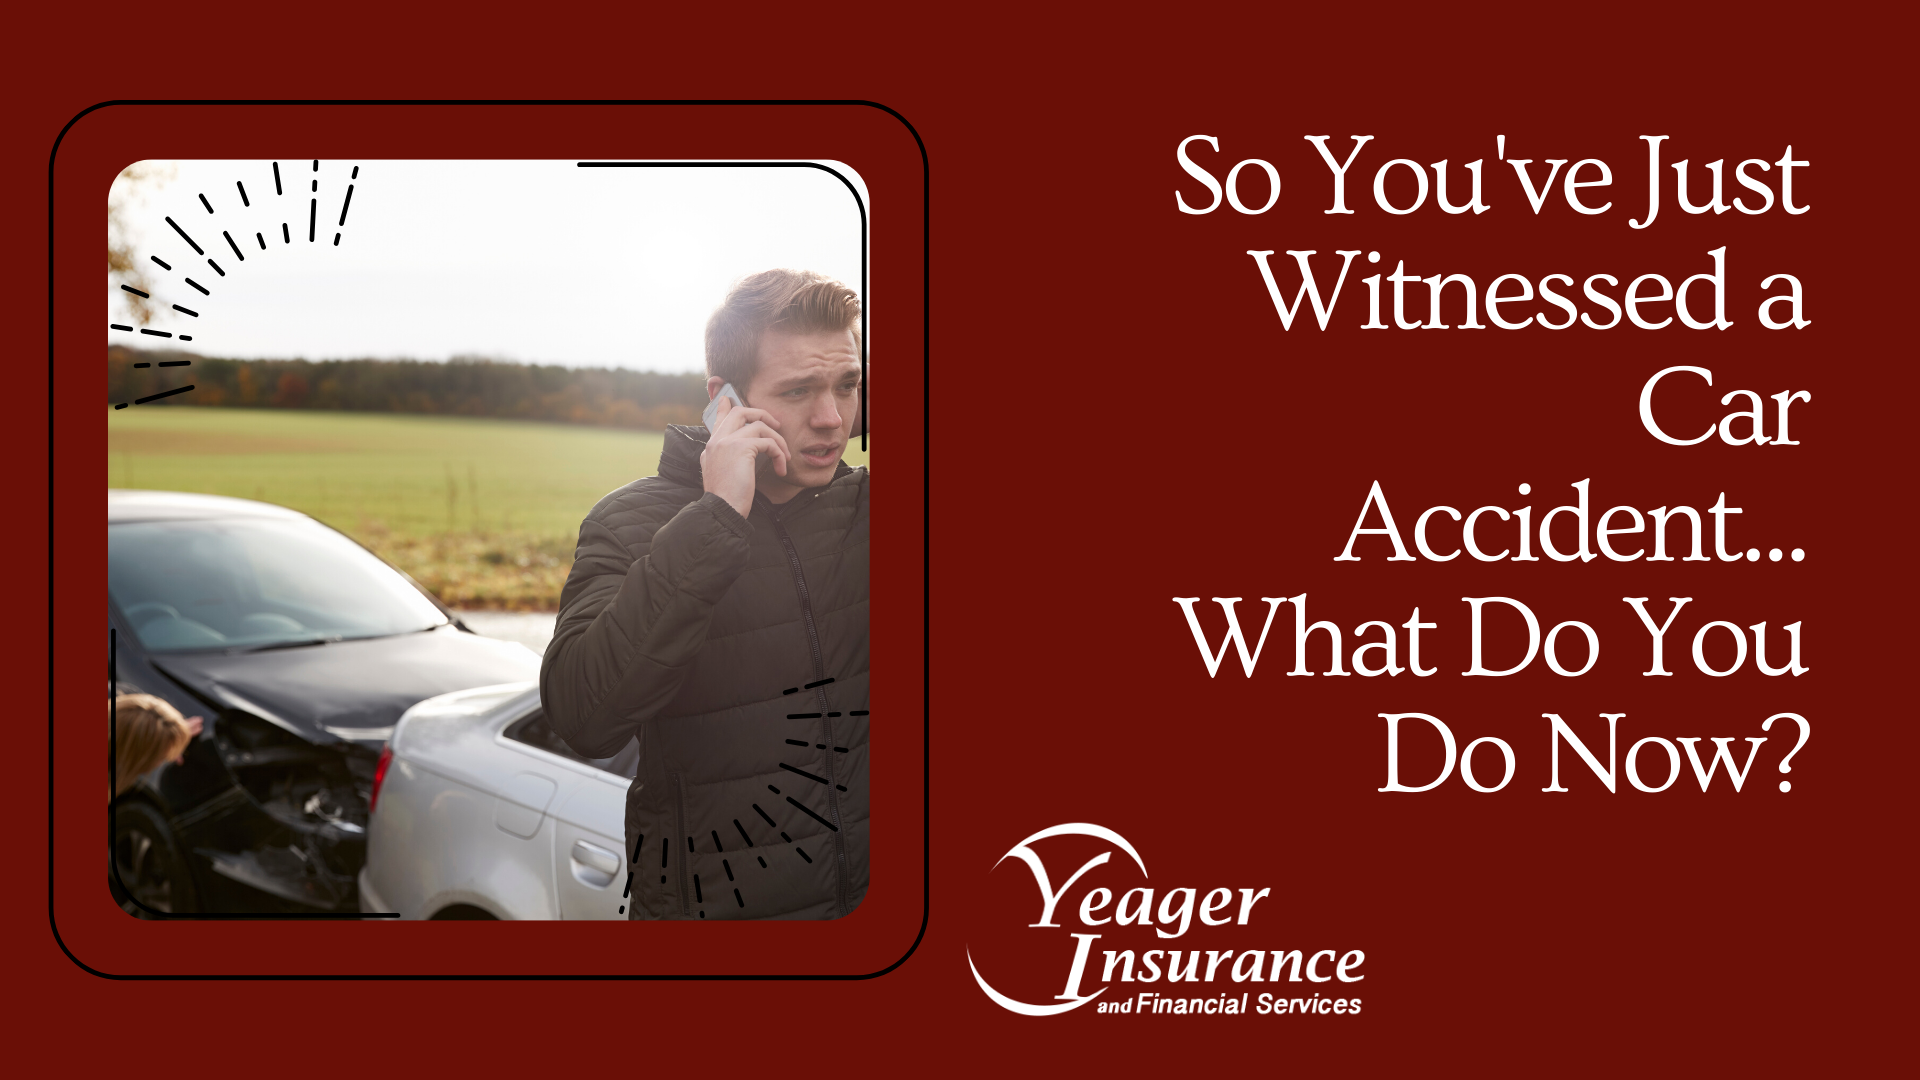 SO YOU'VE JUST WITNESSED A CAR ACCIDENT … WHAT DO YOU DO NOW?